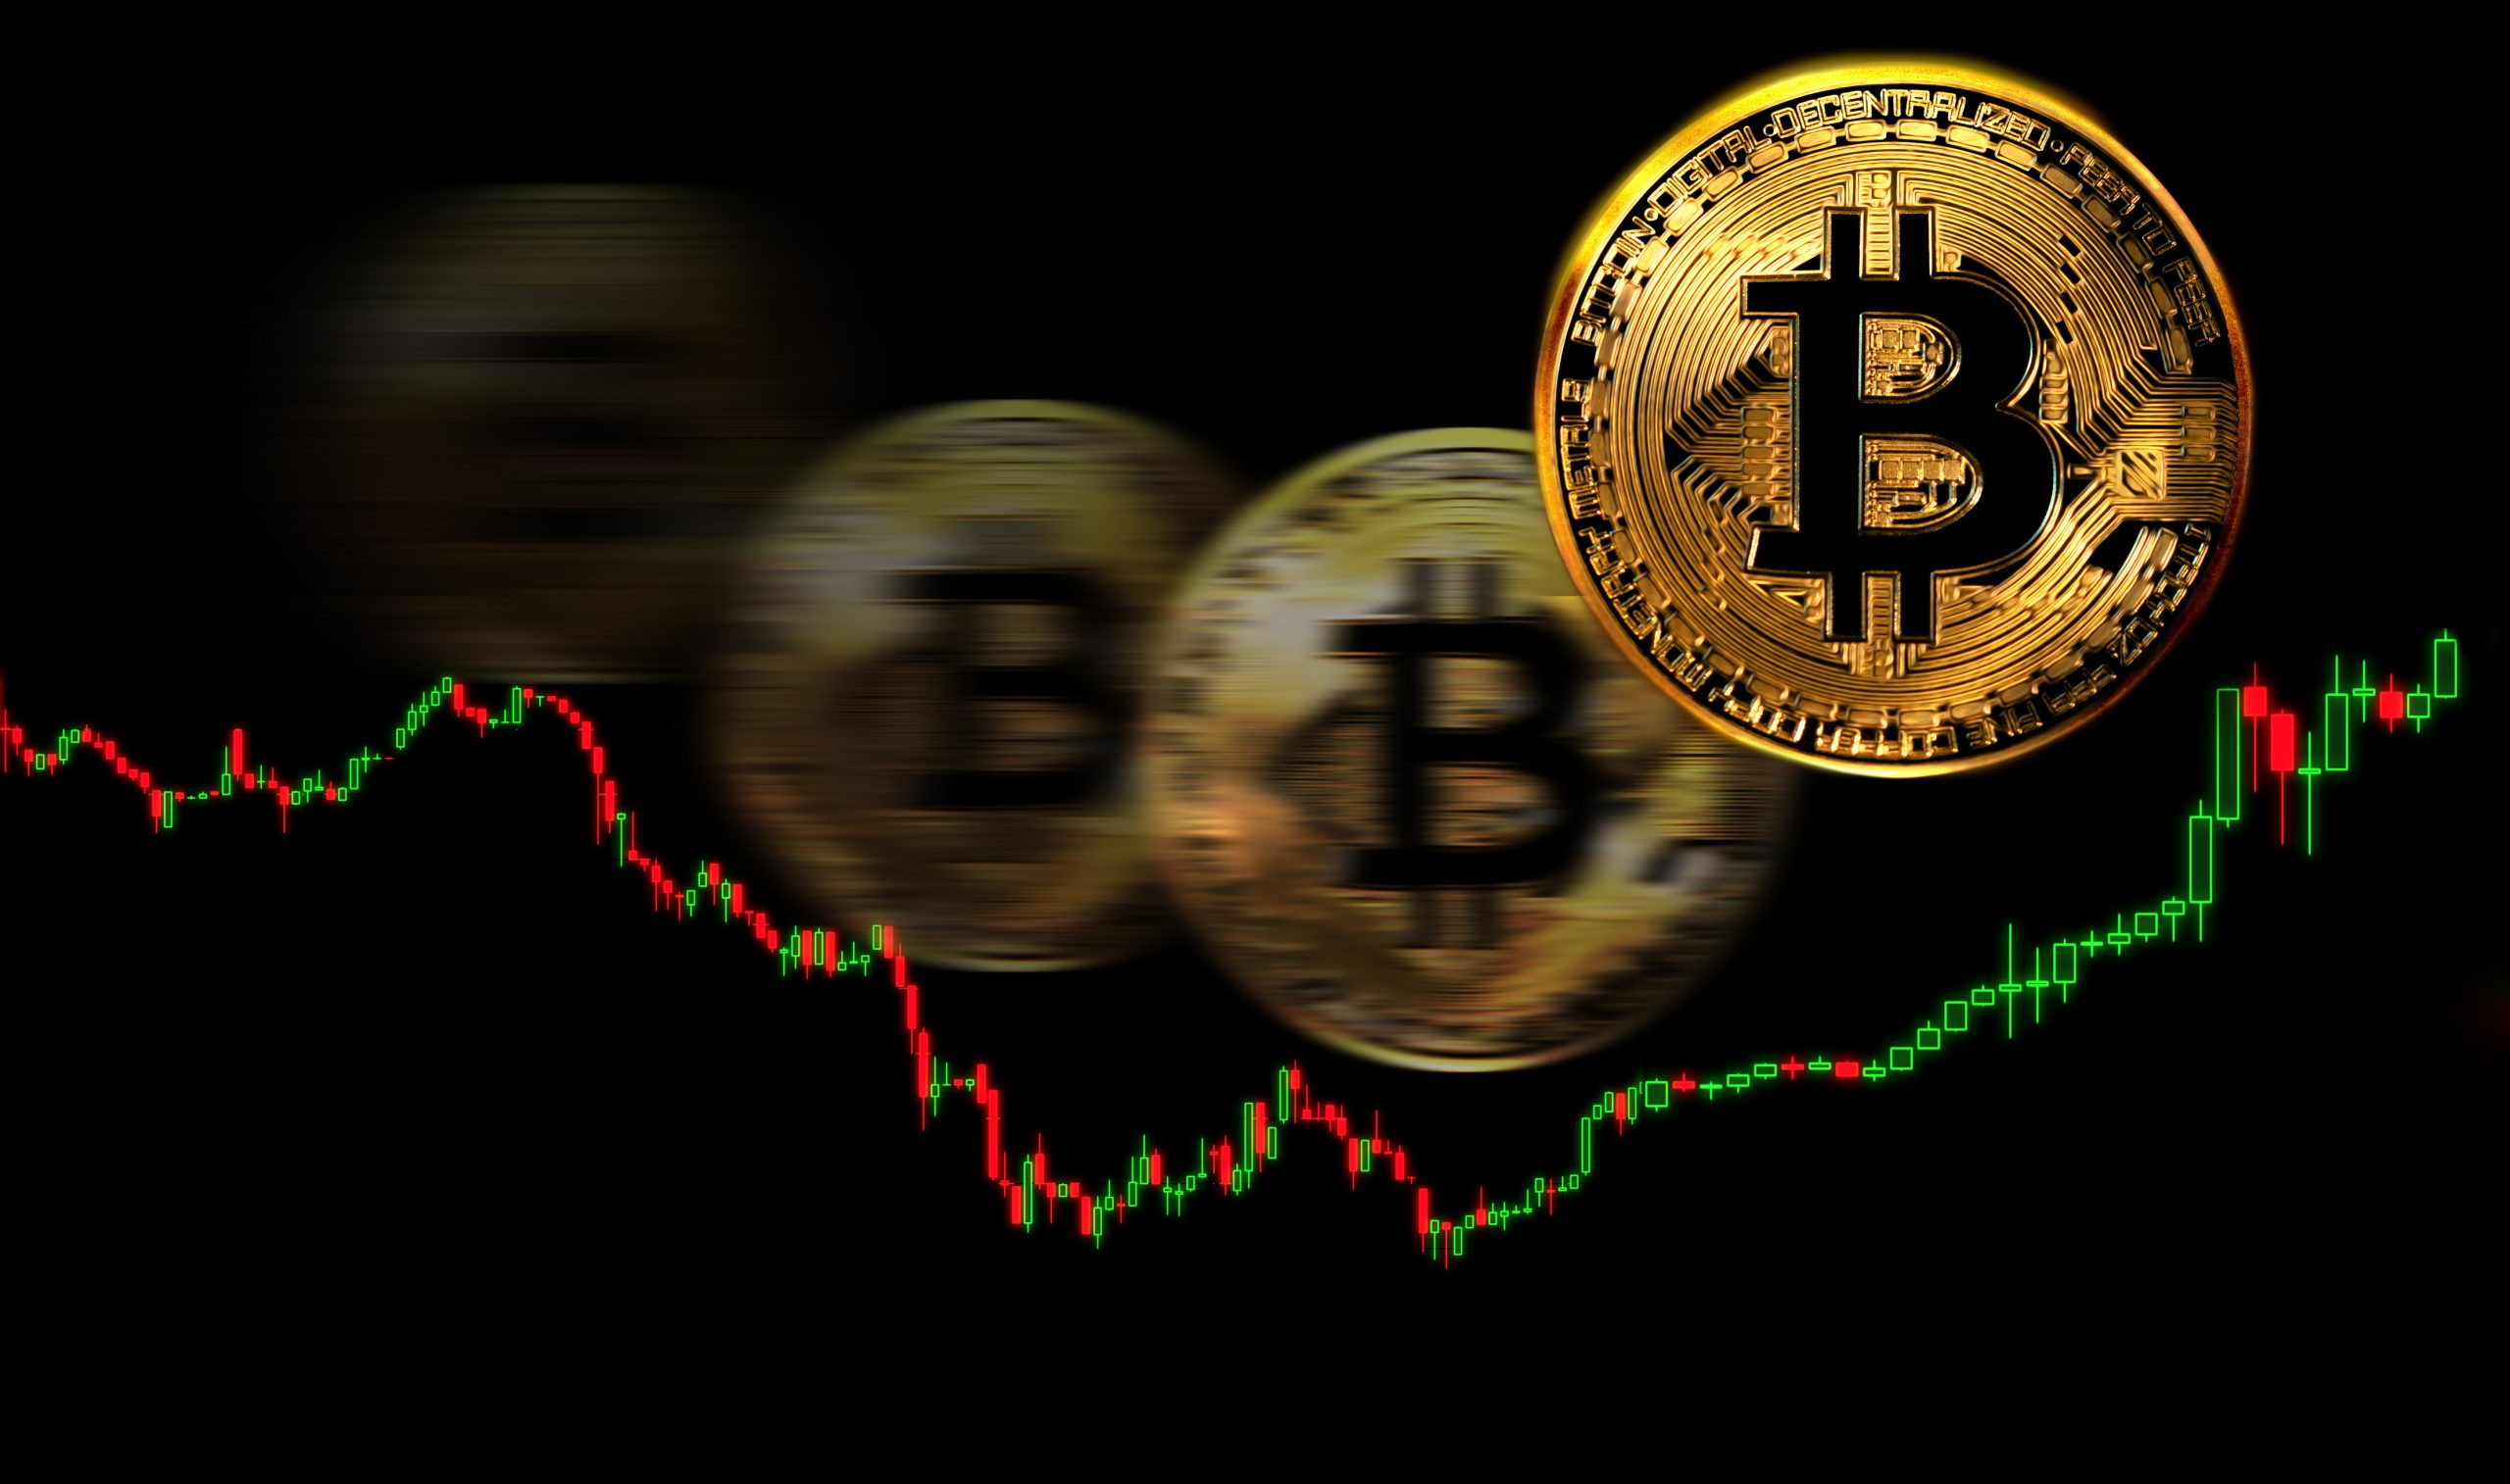 Bitcoin volatility is lower than in 2017